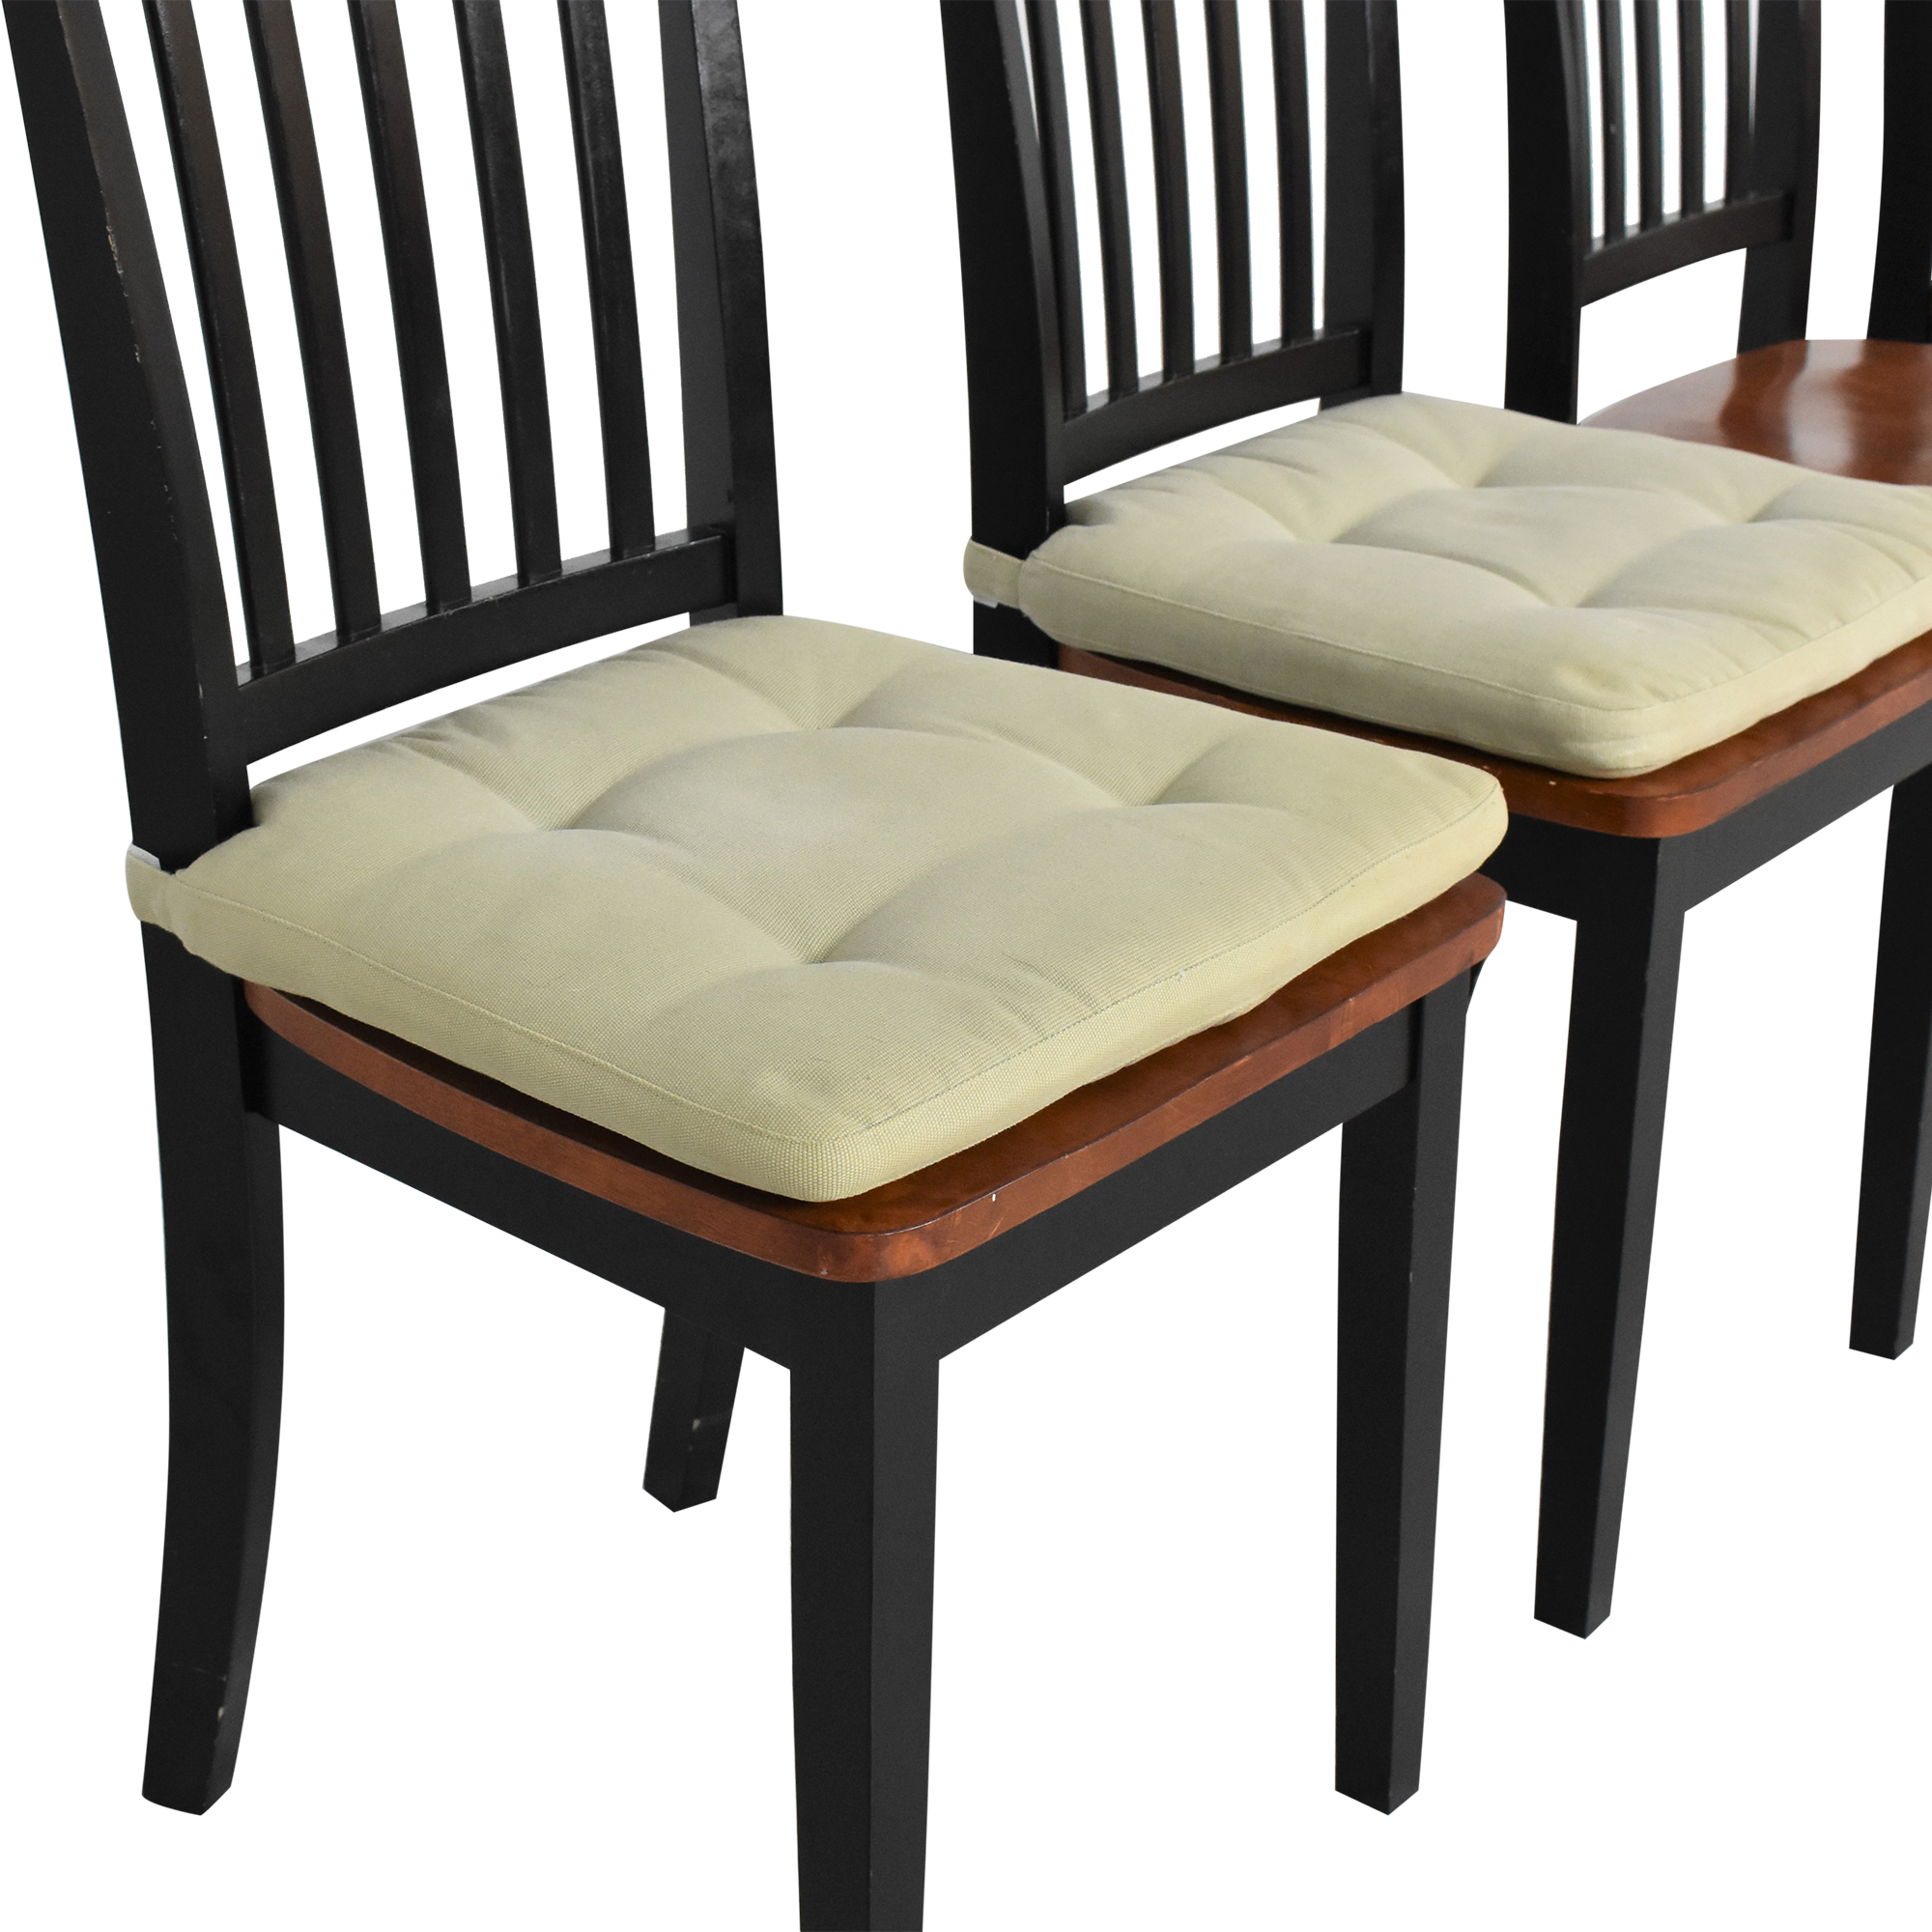 Crate & Barrel Crate & Barrel Village Bruno Dining Chairs used